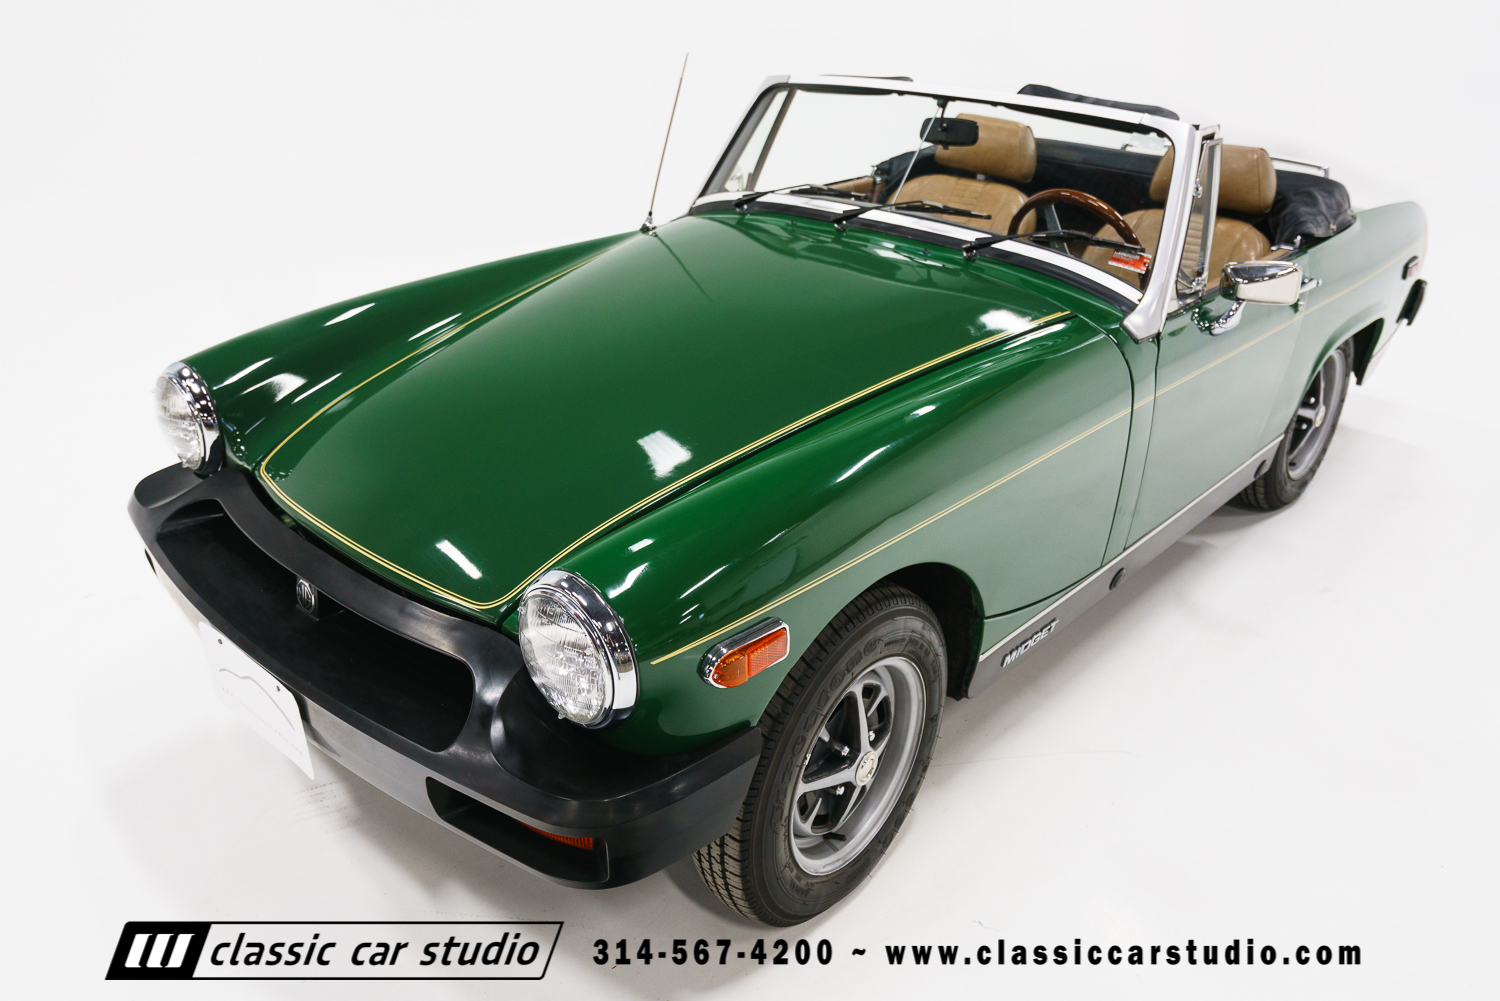 Mg midget dealer hungry, want